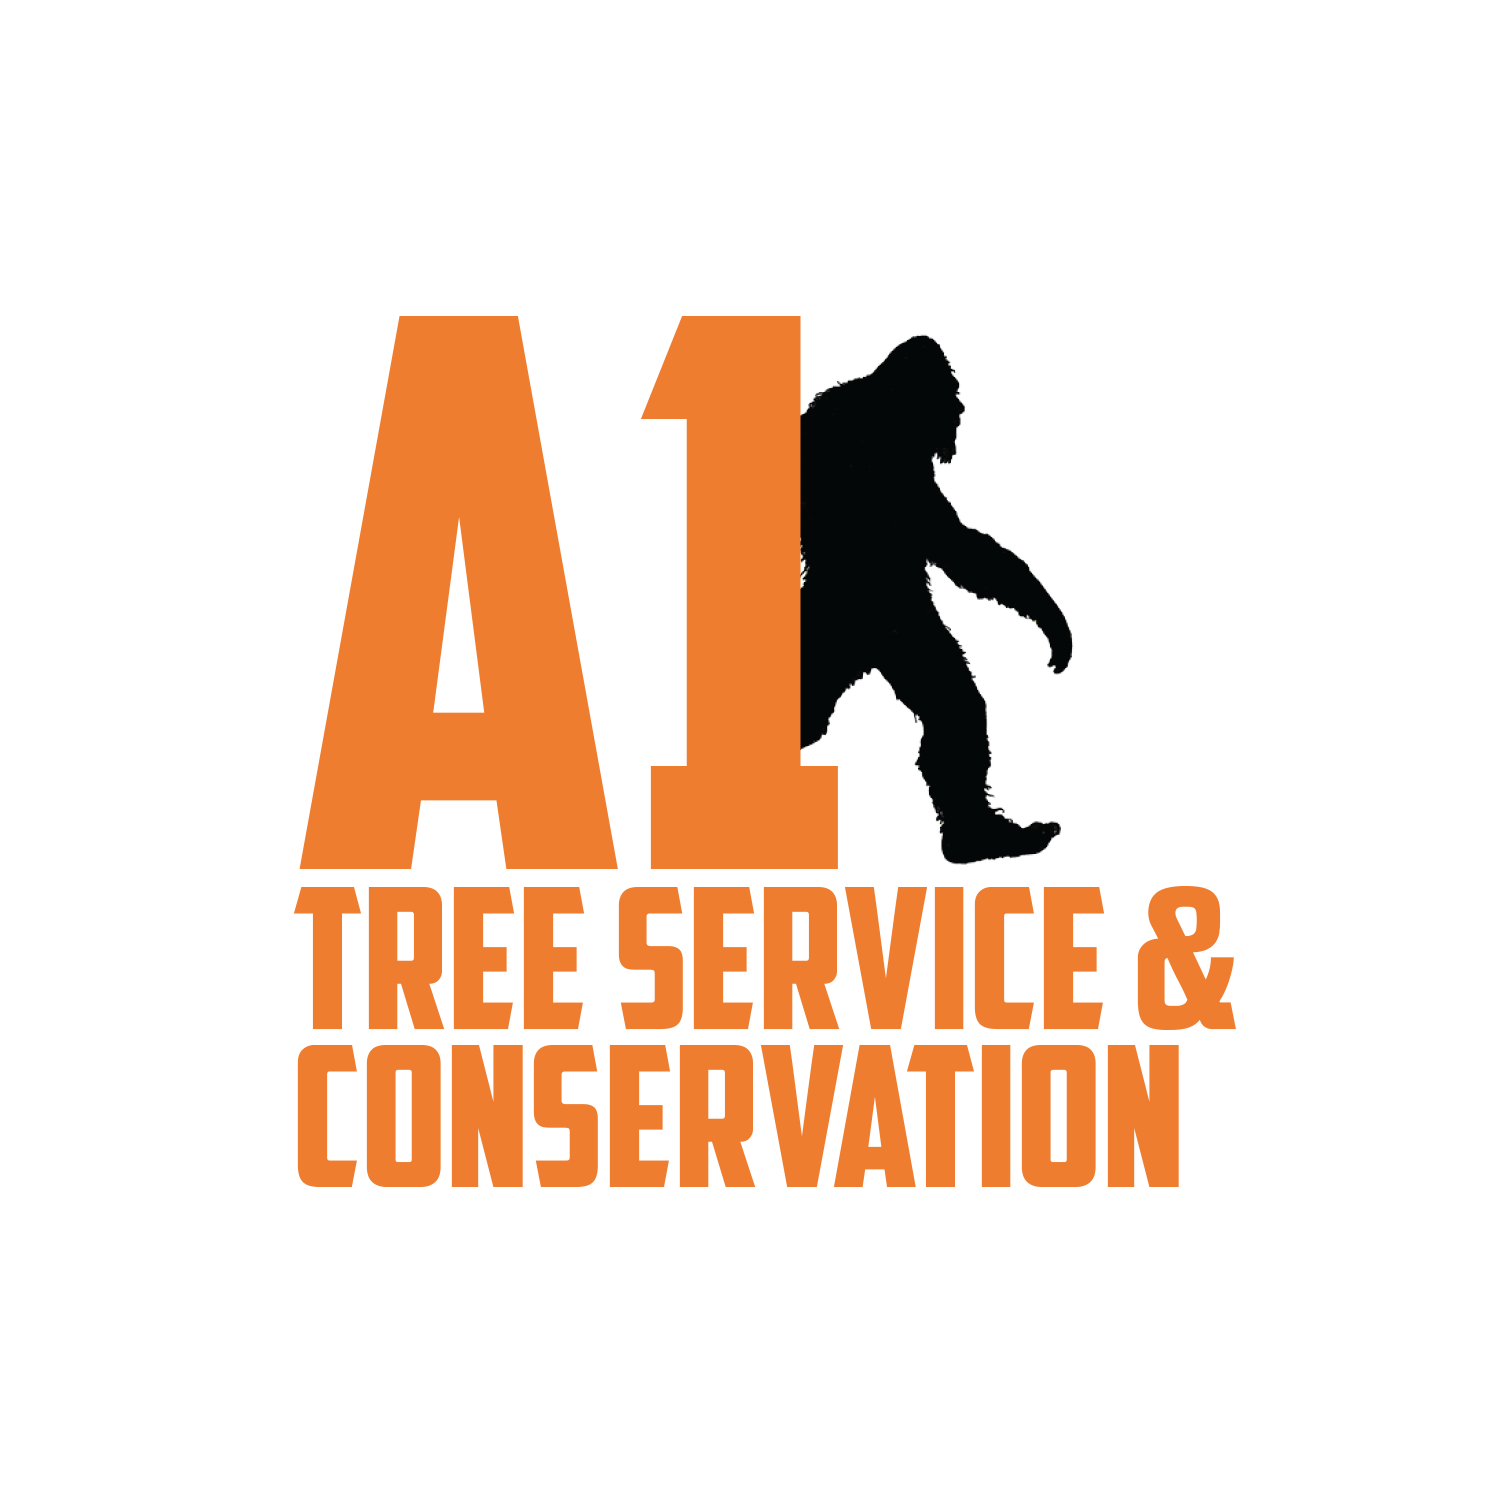 A1 Tree Service Conservation